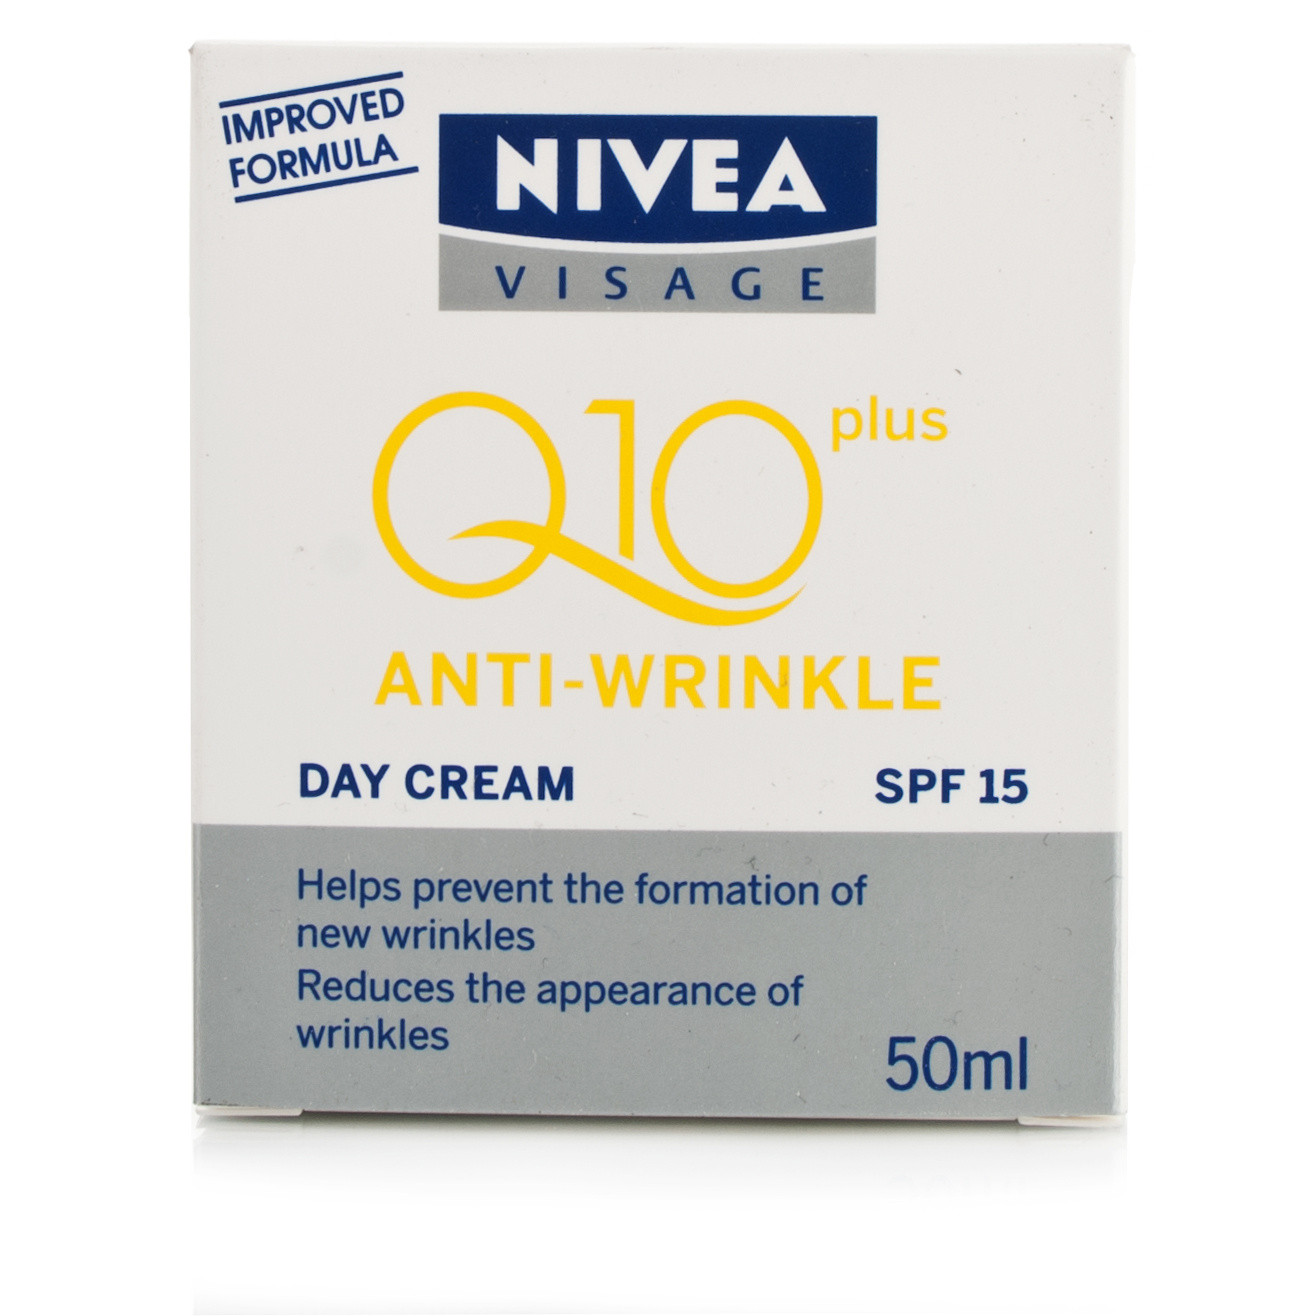 nivea visage q10 plus anti wrinkle day cream. Black Bedroom Furniture Sets. Home Design Ideas